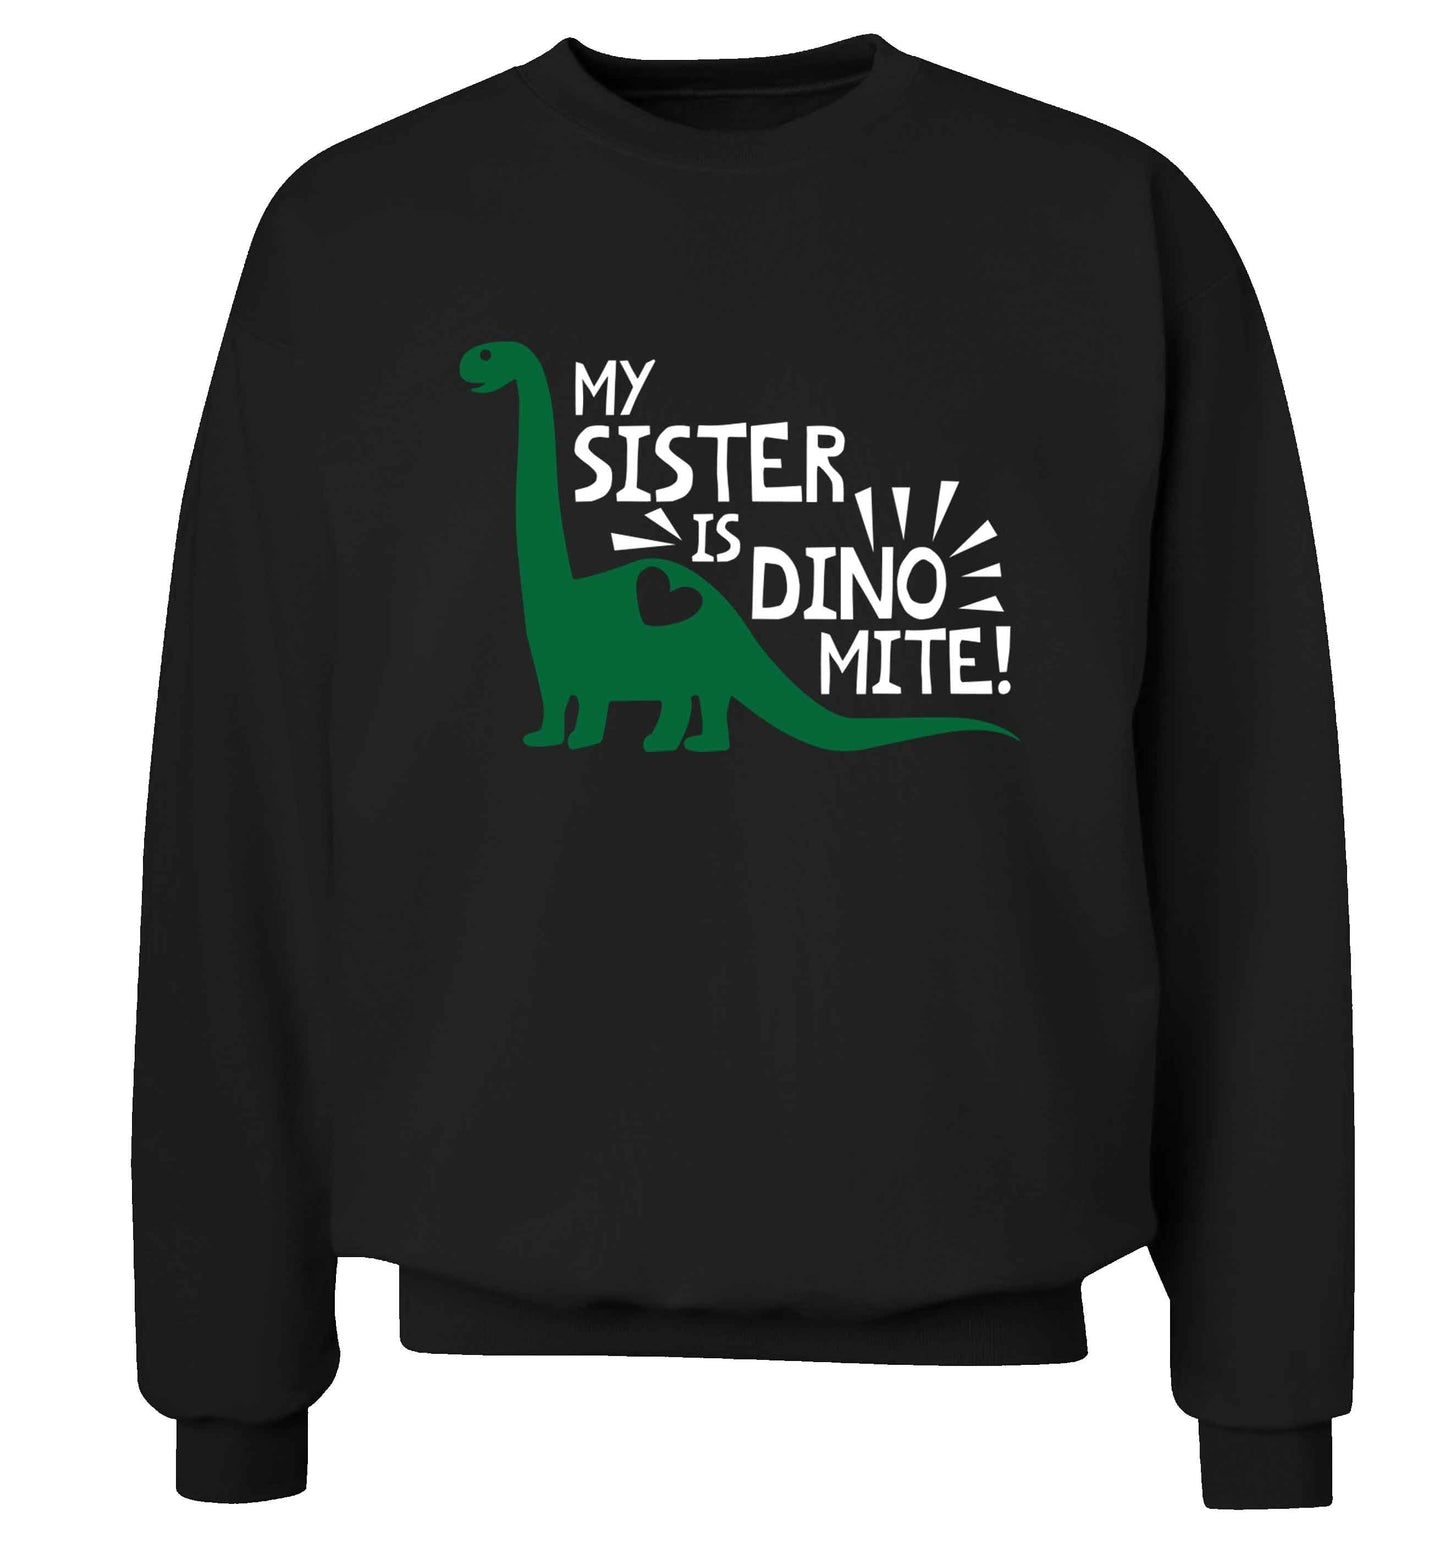 My sister is dinomite! Adult's unisex black Sweater 2XL